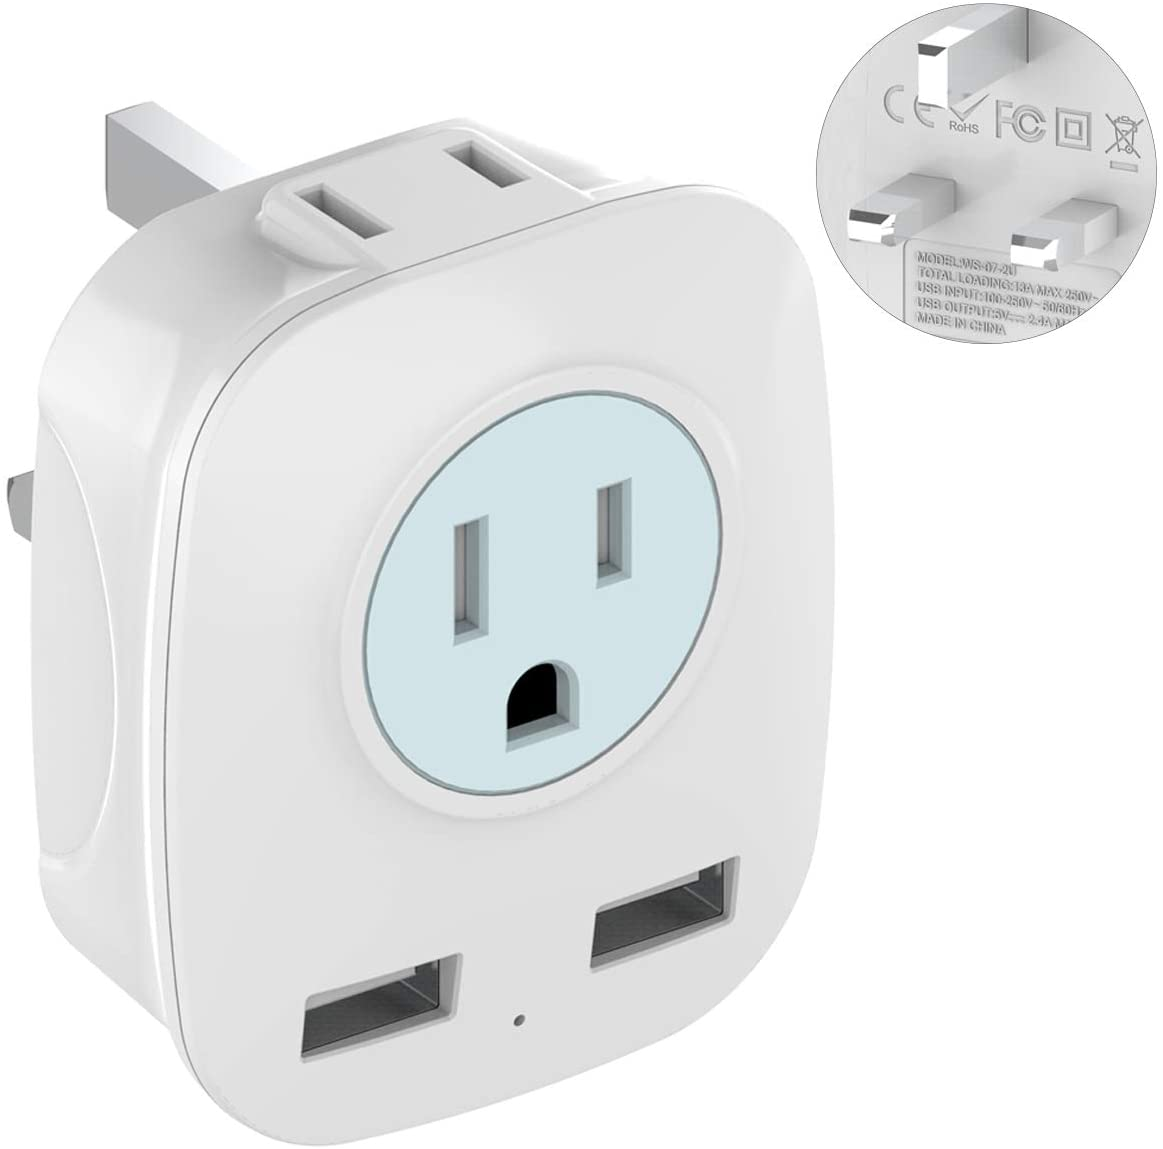 UK Ireland Hong Kong Travel Plug Adapter with 2 USB Ports, International 2-Outlet Power Adapter, Outlet Adapter for USA to British England Scotland Irish London (Type G)